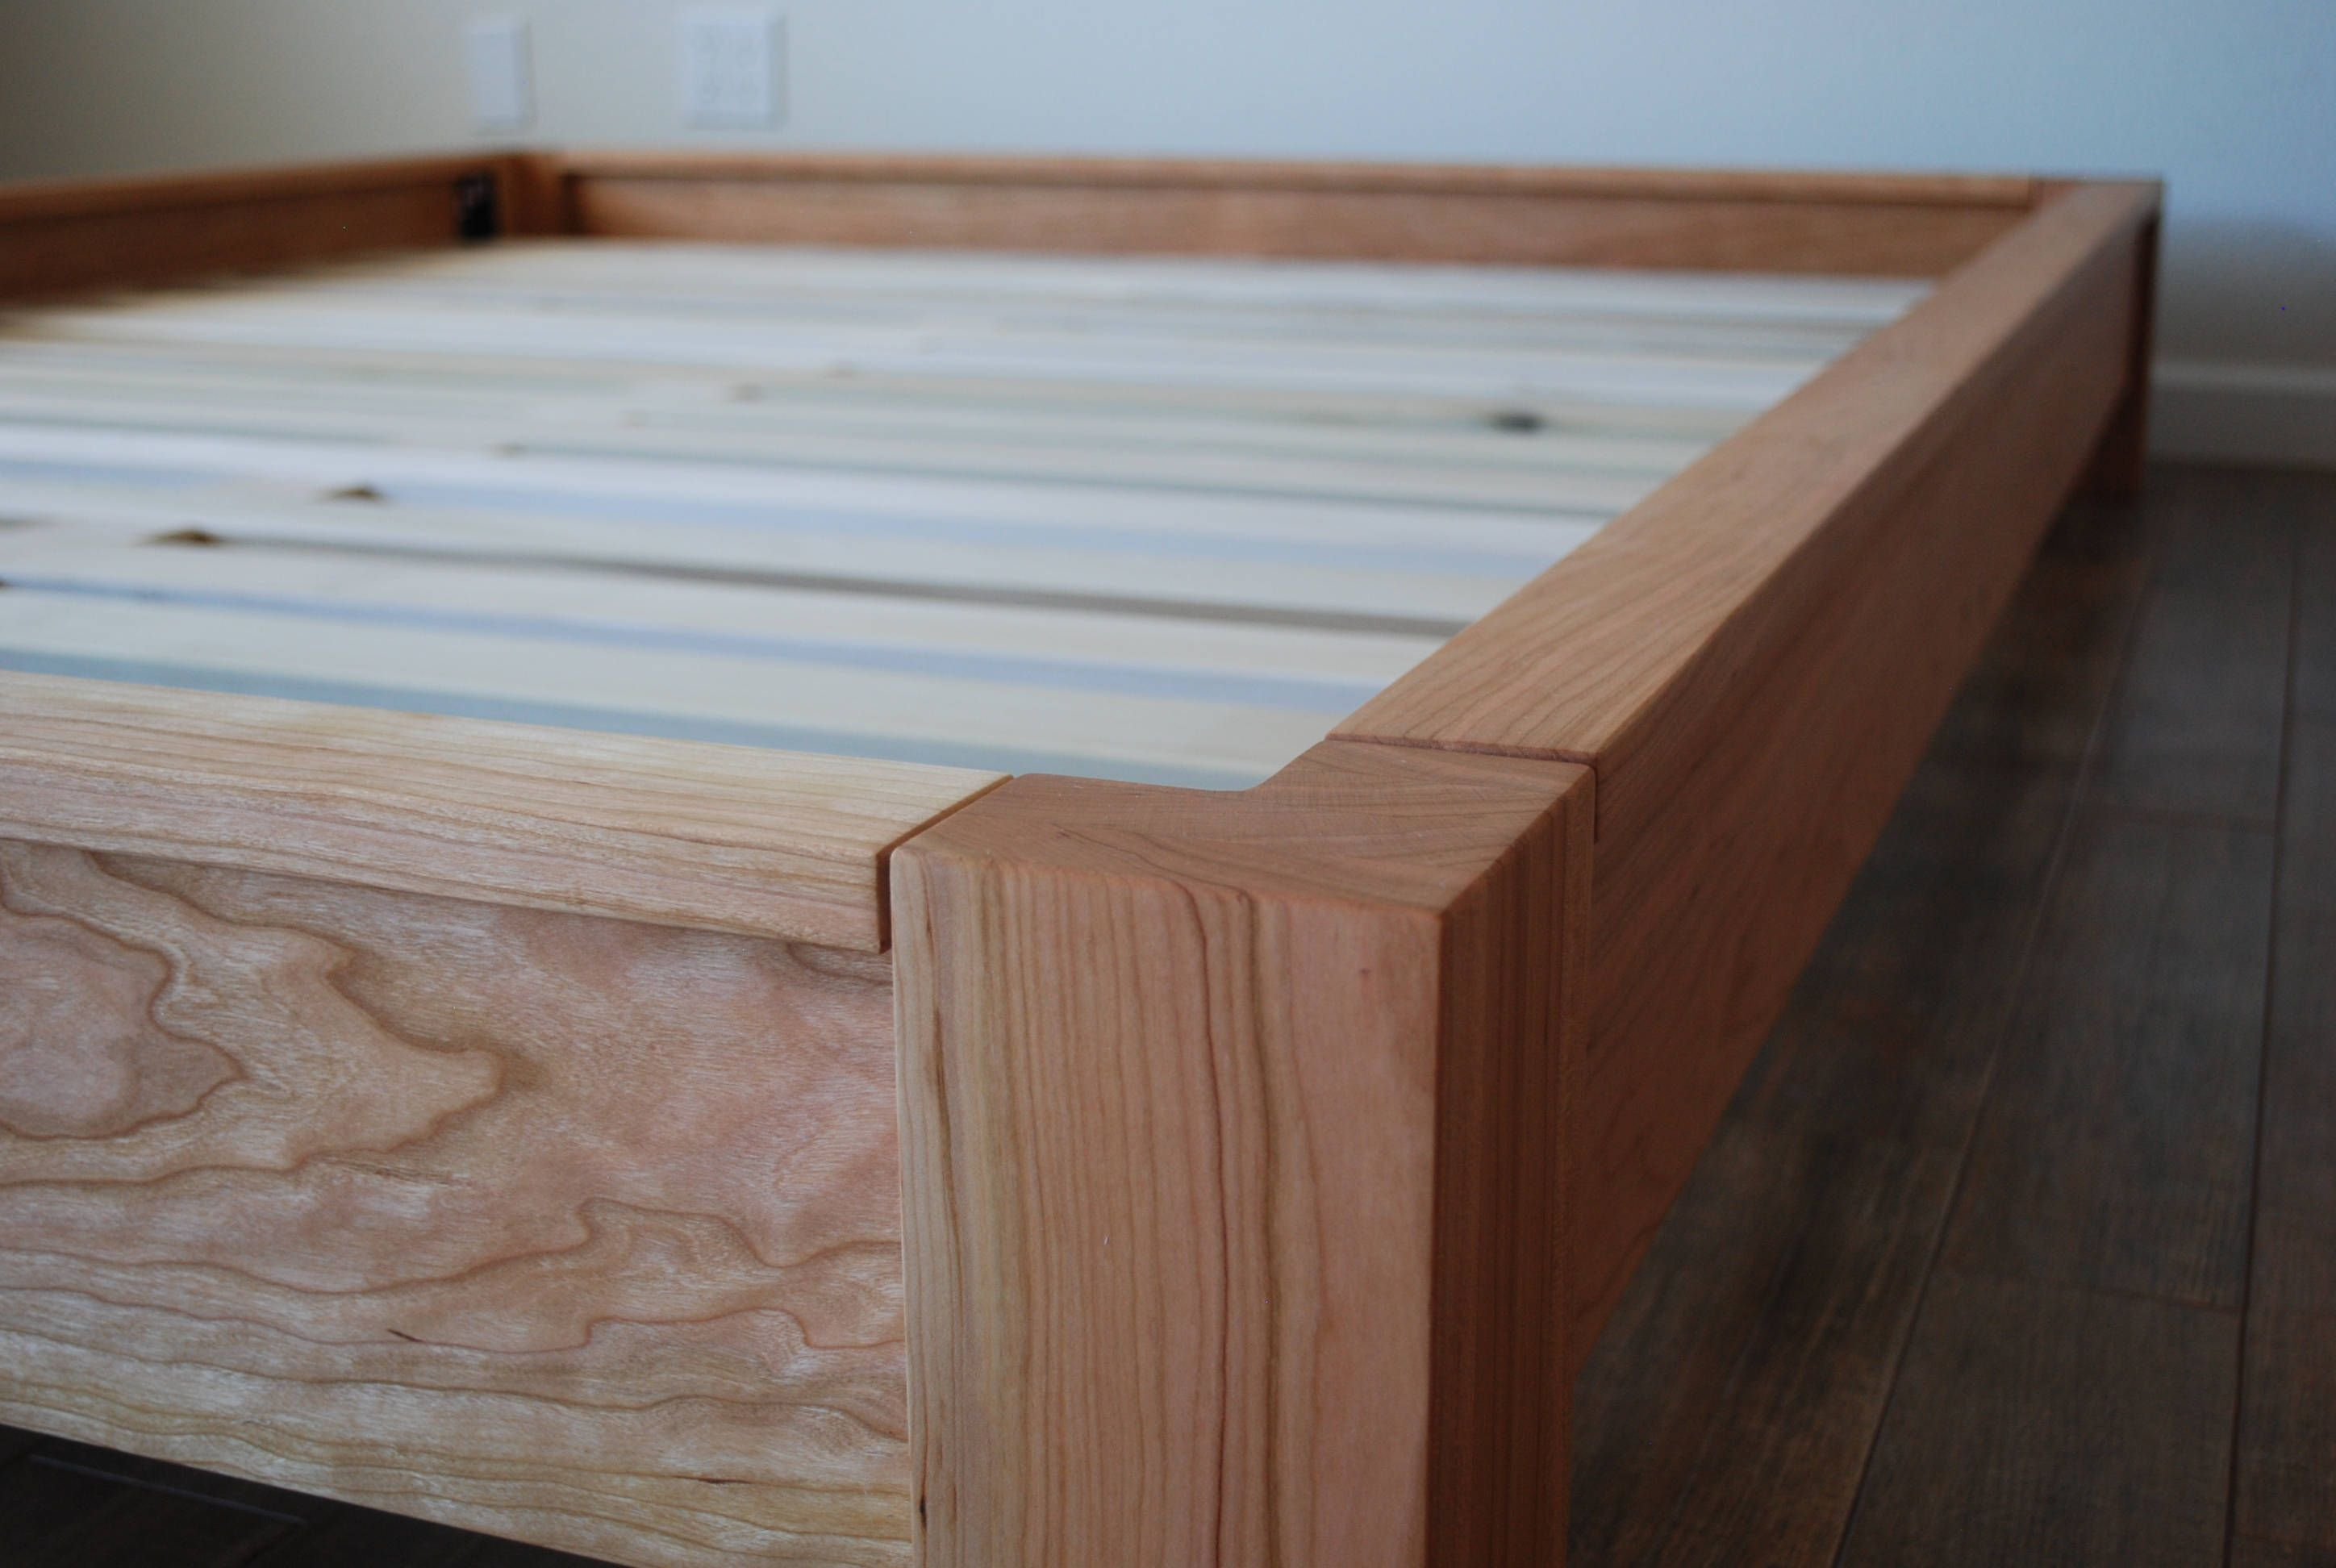 Lowprofile Platform Bed in Cherry, Simple Bed Frame